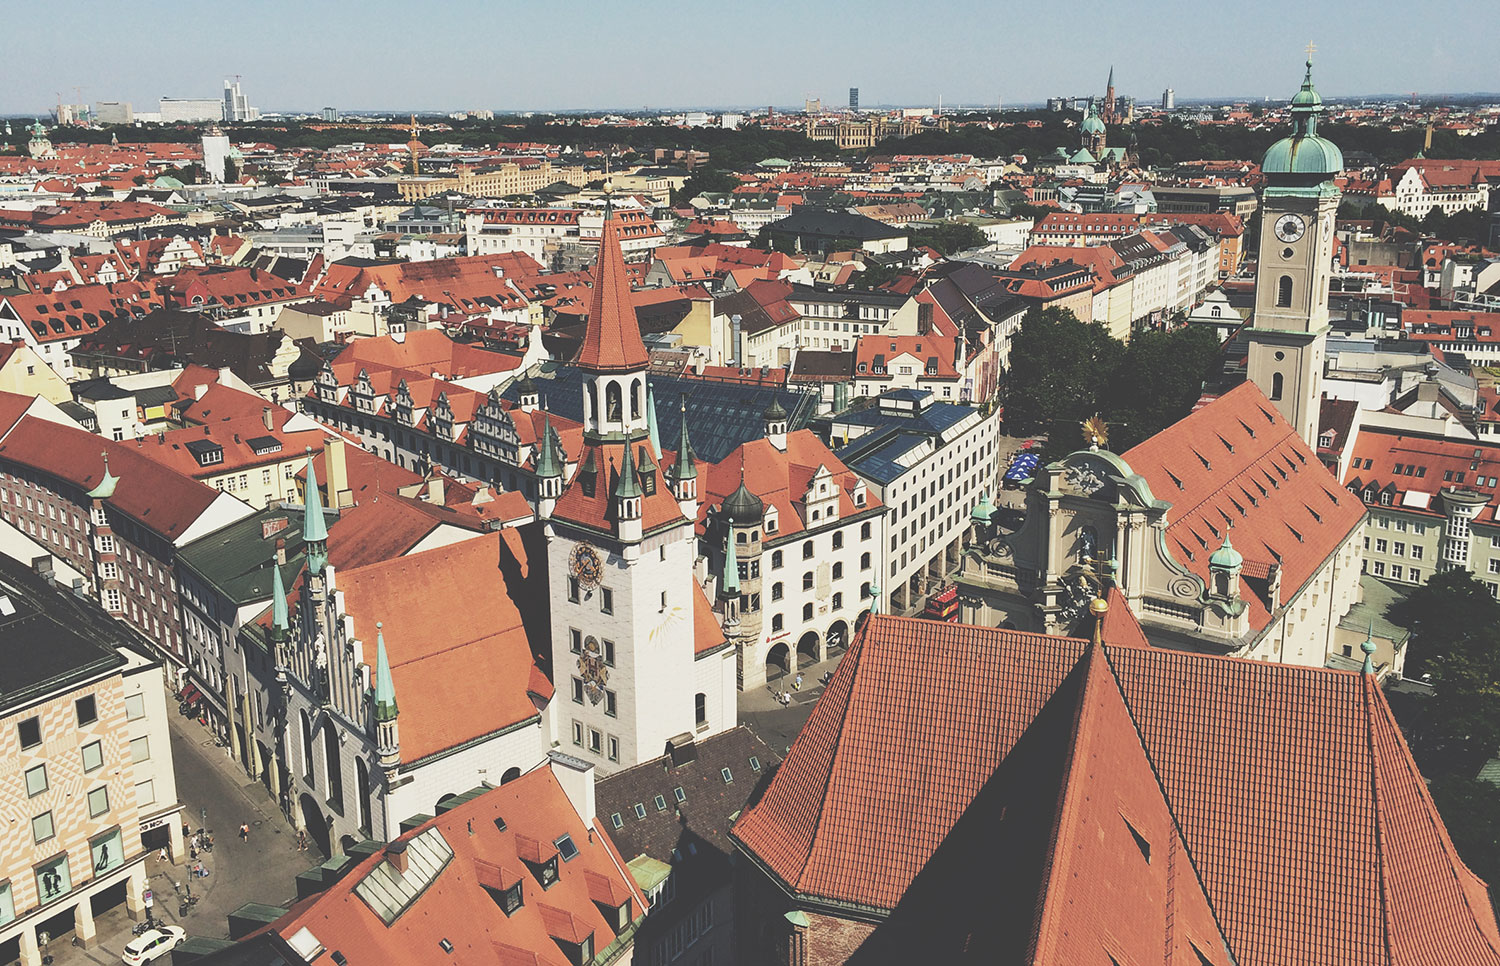 View of Munich from atop of St. Peter's Church